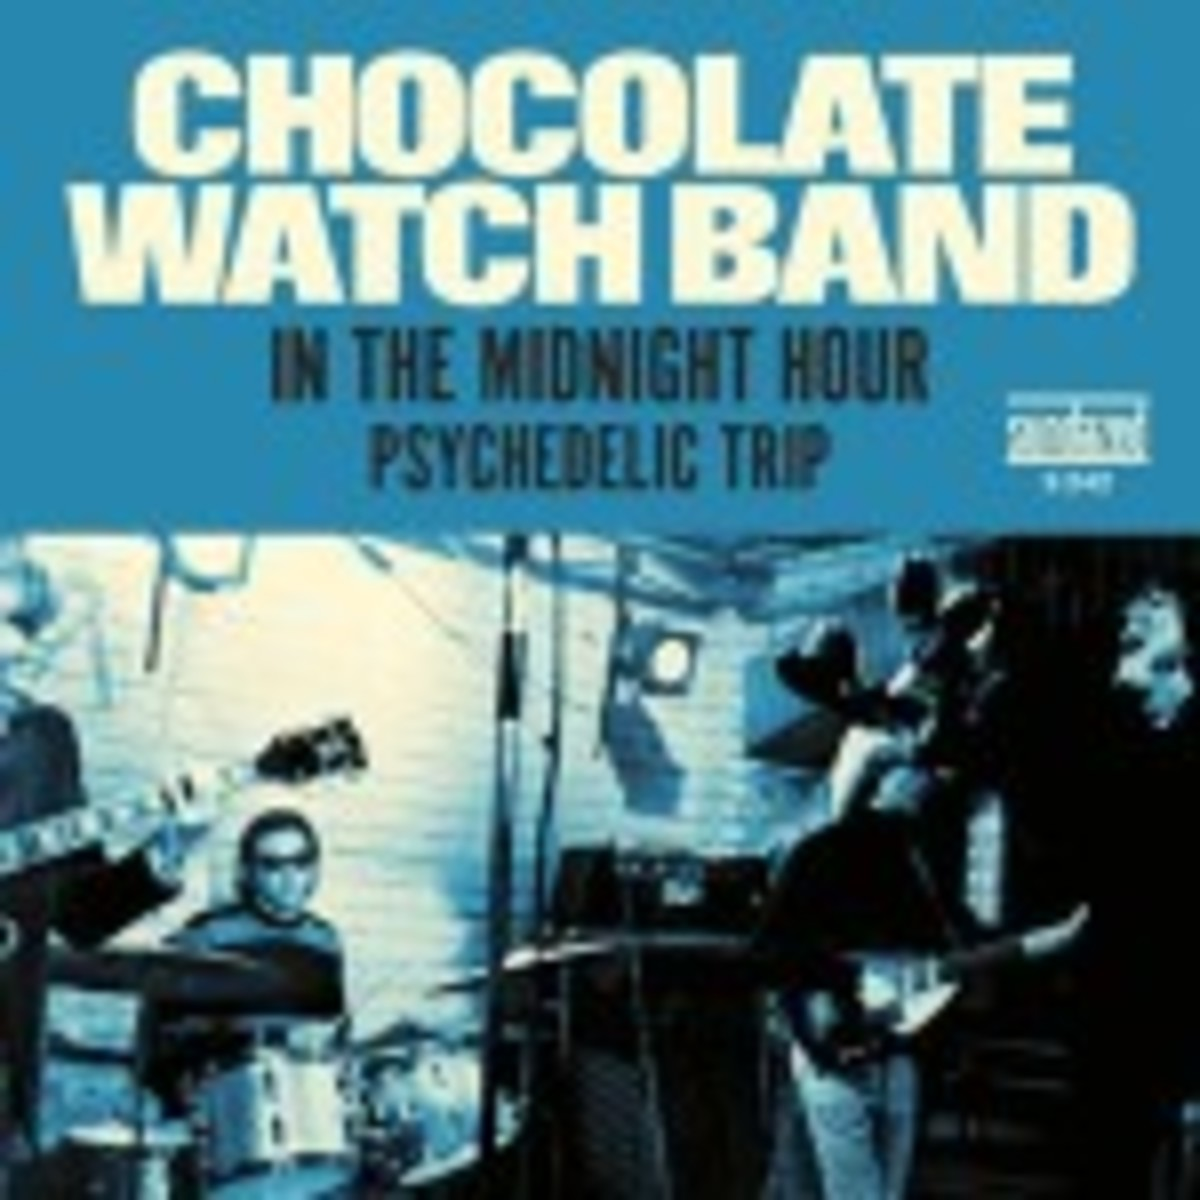 Chocolate Watch Band single for Record Store Day